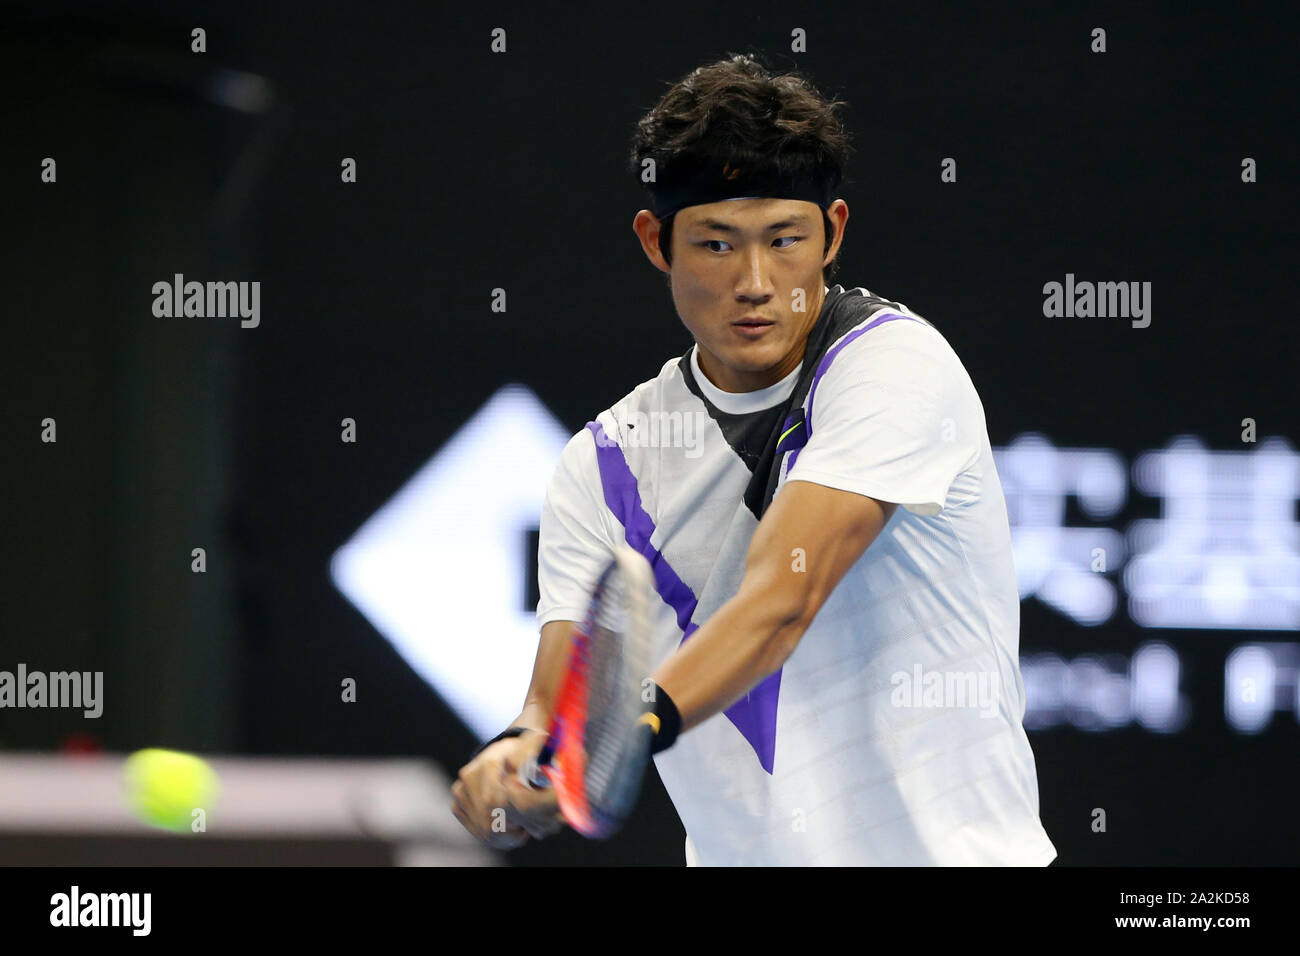 Chinese professional tennis player Zhang Zhizhen competes against Austrian professional tennis player Dominic Thiem at the second round of 2019 China Open (Tennis), in Beijing, China, 2 October 2019. Chinese professional tennis player Zhang Zhizhen was defeated by Austrian professional tennis player Dominic Thiem with 0-2 at the second round of 2019 China Open (Tennis), in Beijing, China, 2 October 2019. Stock Photo